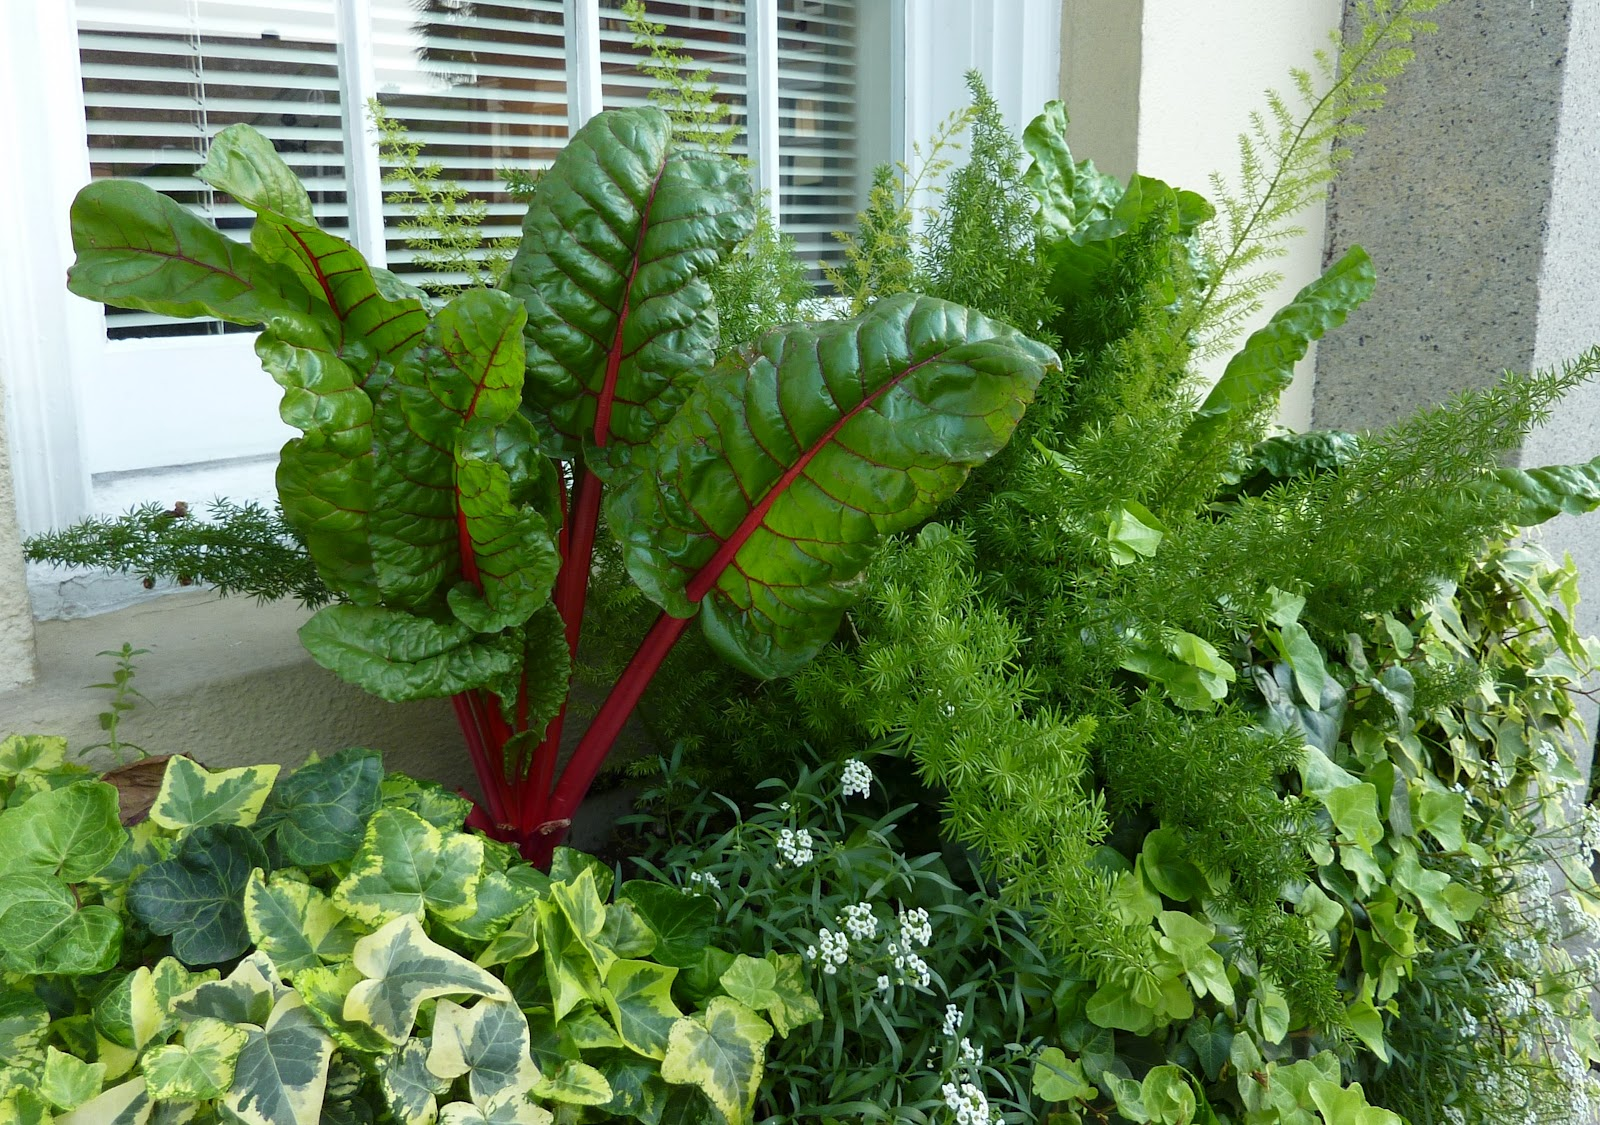 Vegetable garden planter boxes - Window Box In Commercial Building Charleston Sc With Lovely Red